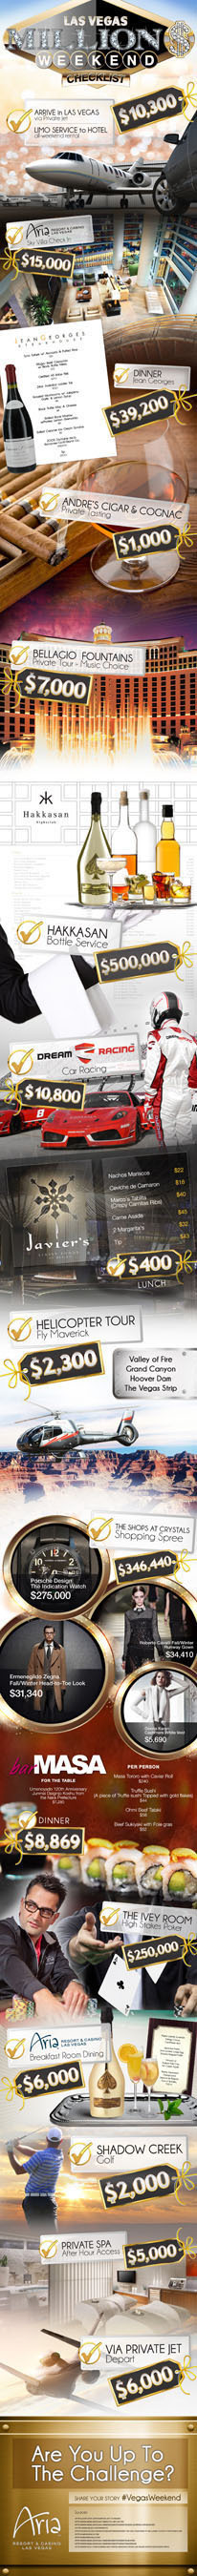 ARIA Resort & Casino has created this epic visual checklist filled with the best-of-the-best on The Strip and ...